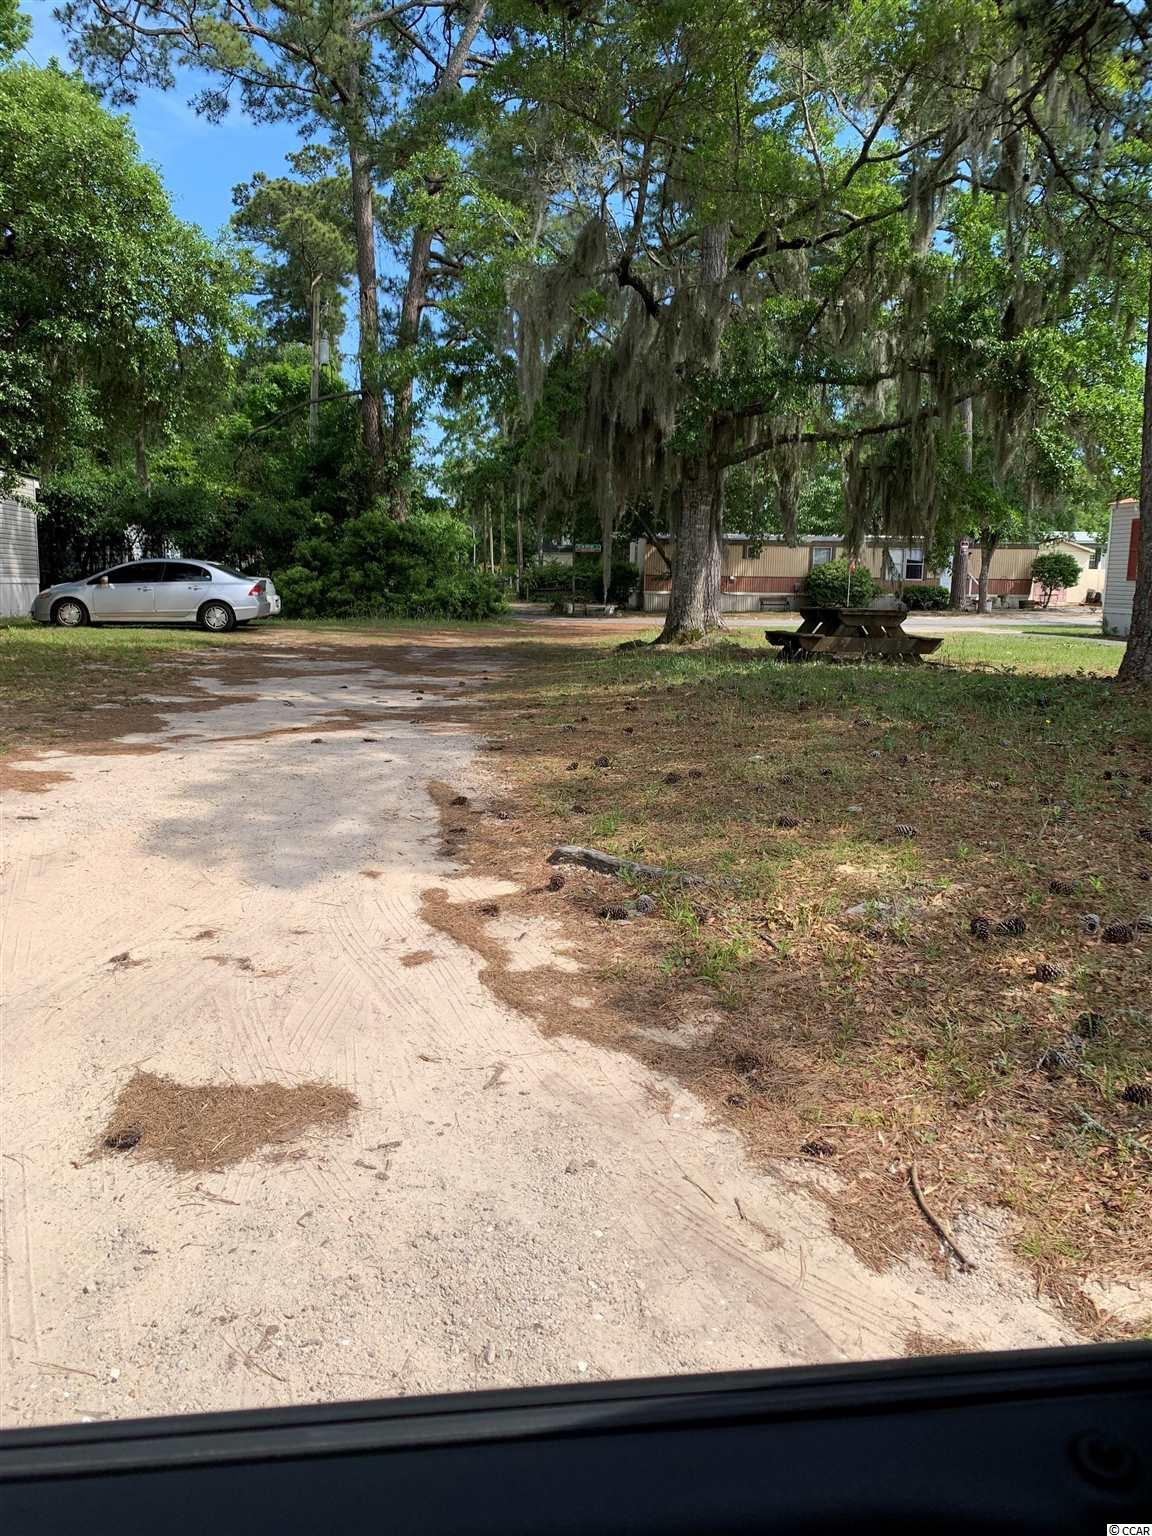 Nice lot in The Grove. You can have a single wide, doublewide, modular or stick built. A short golf cart ride to Cherry Grove Beach, grocery stores, shopping and more. 3 blocks away from the ICW.